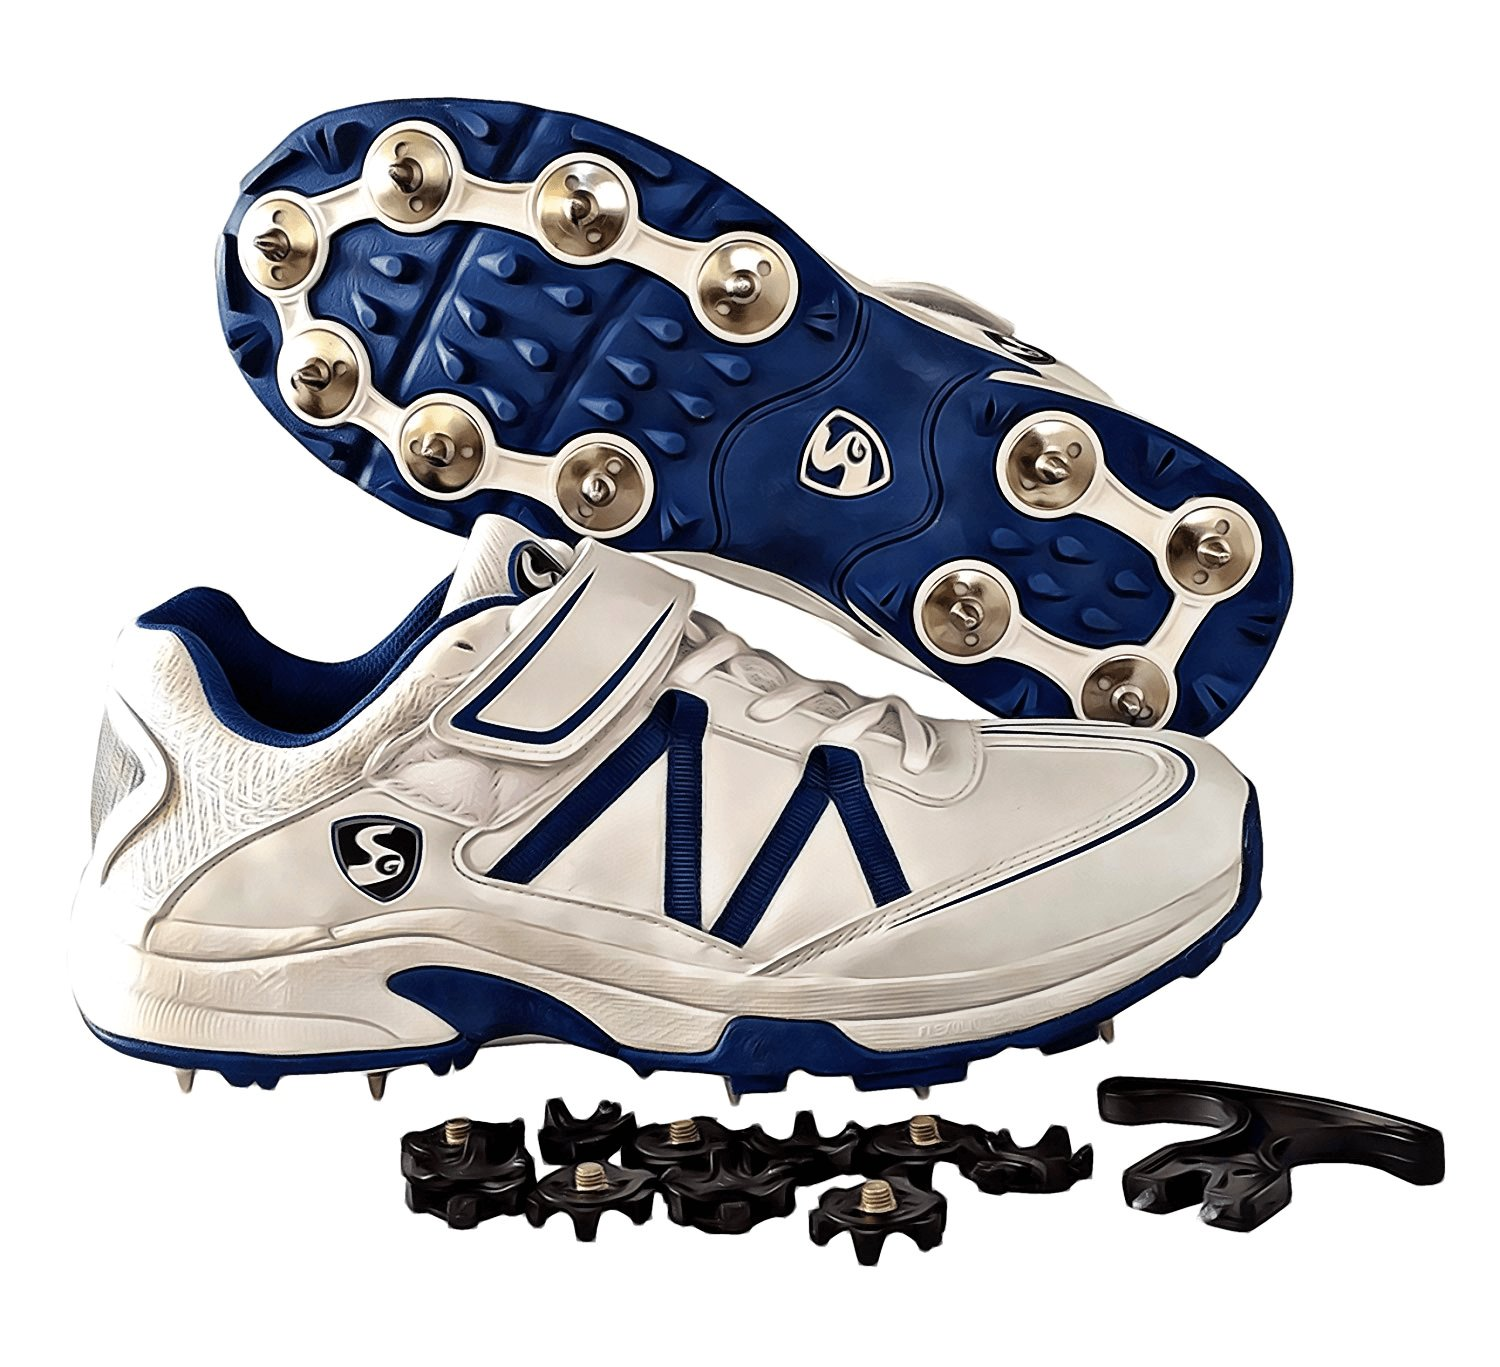 SG Ex-Treme Cricket Studs with Metal Spikes